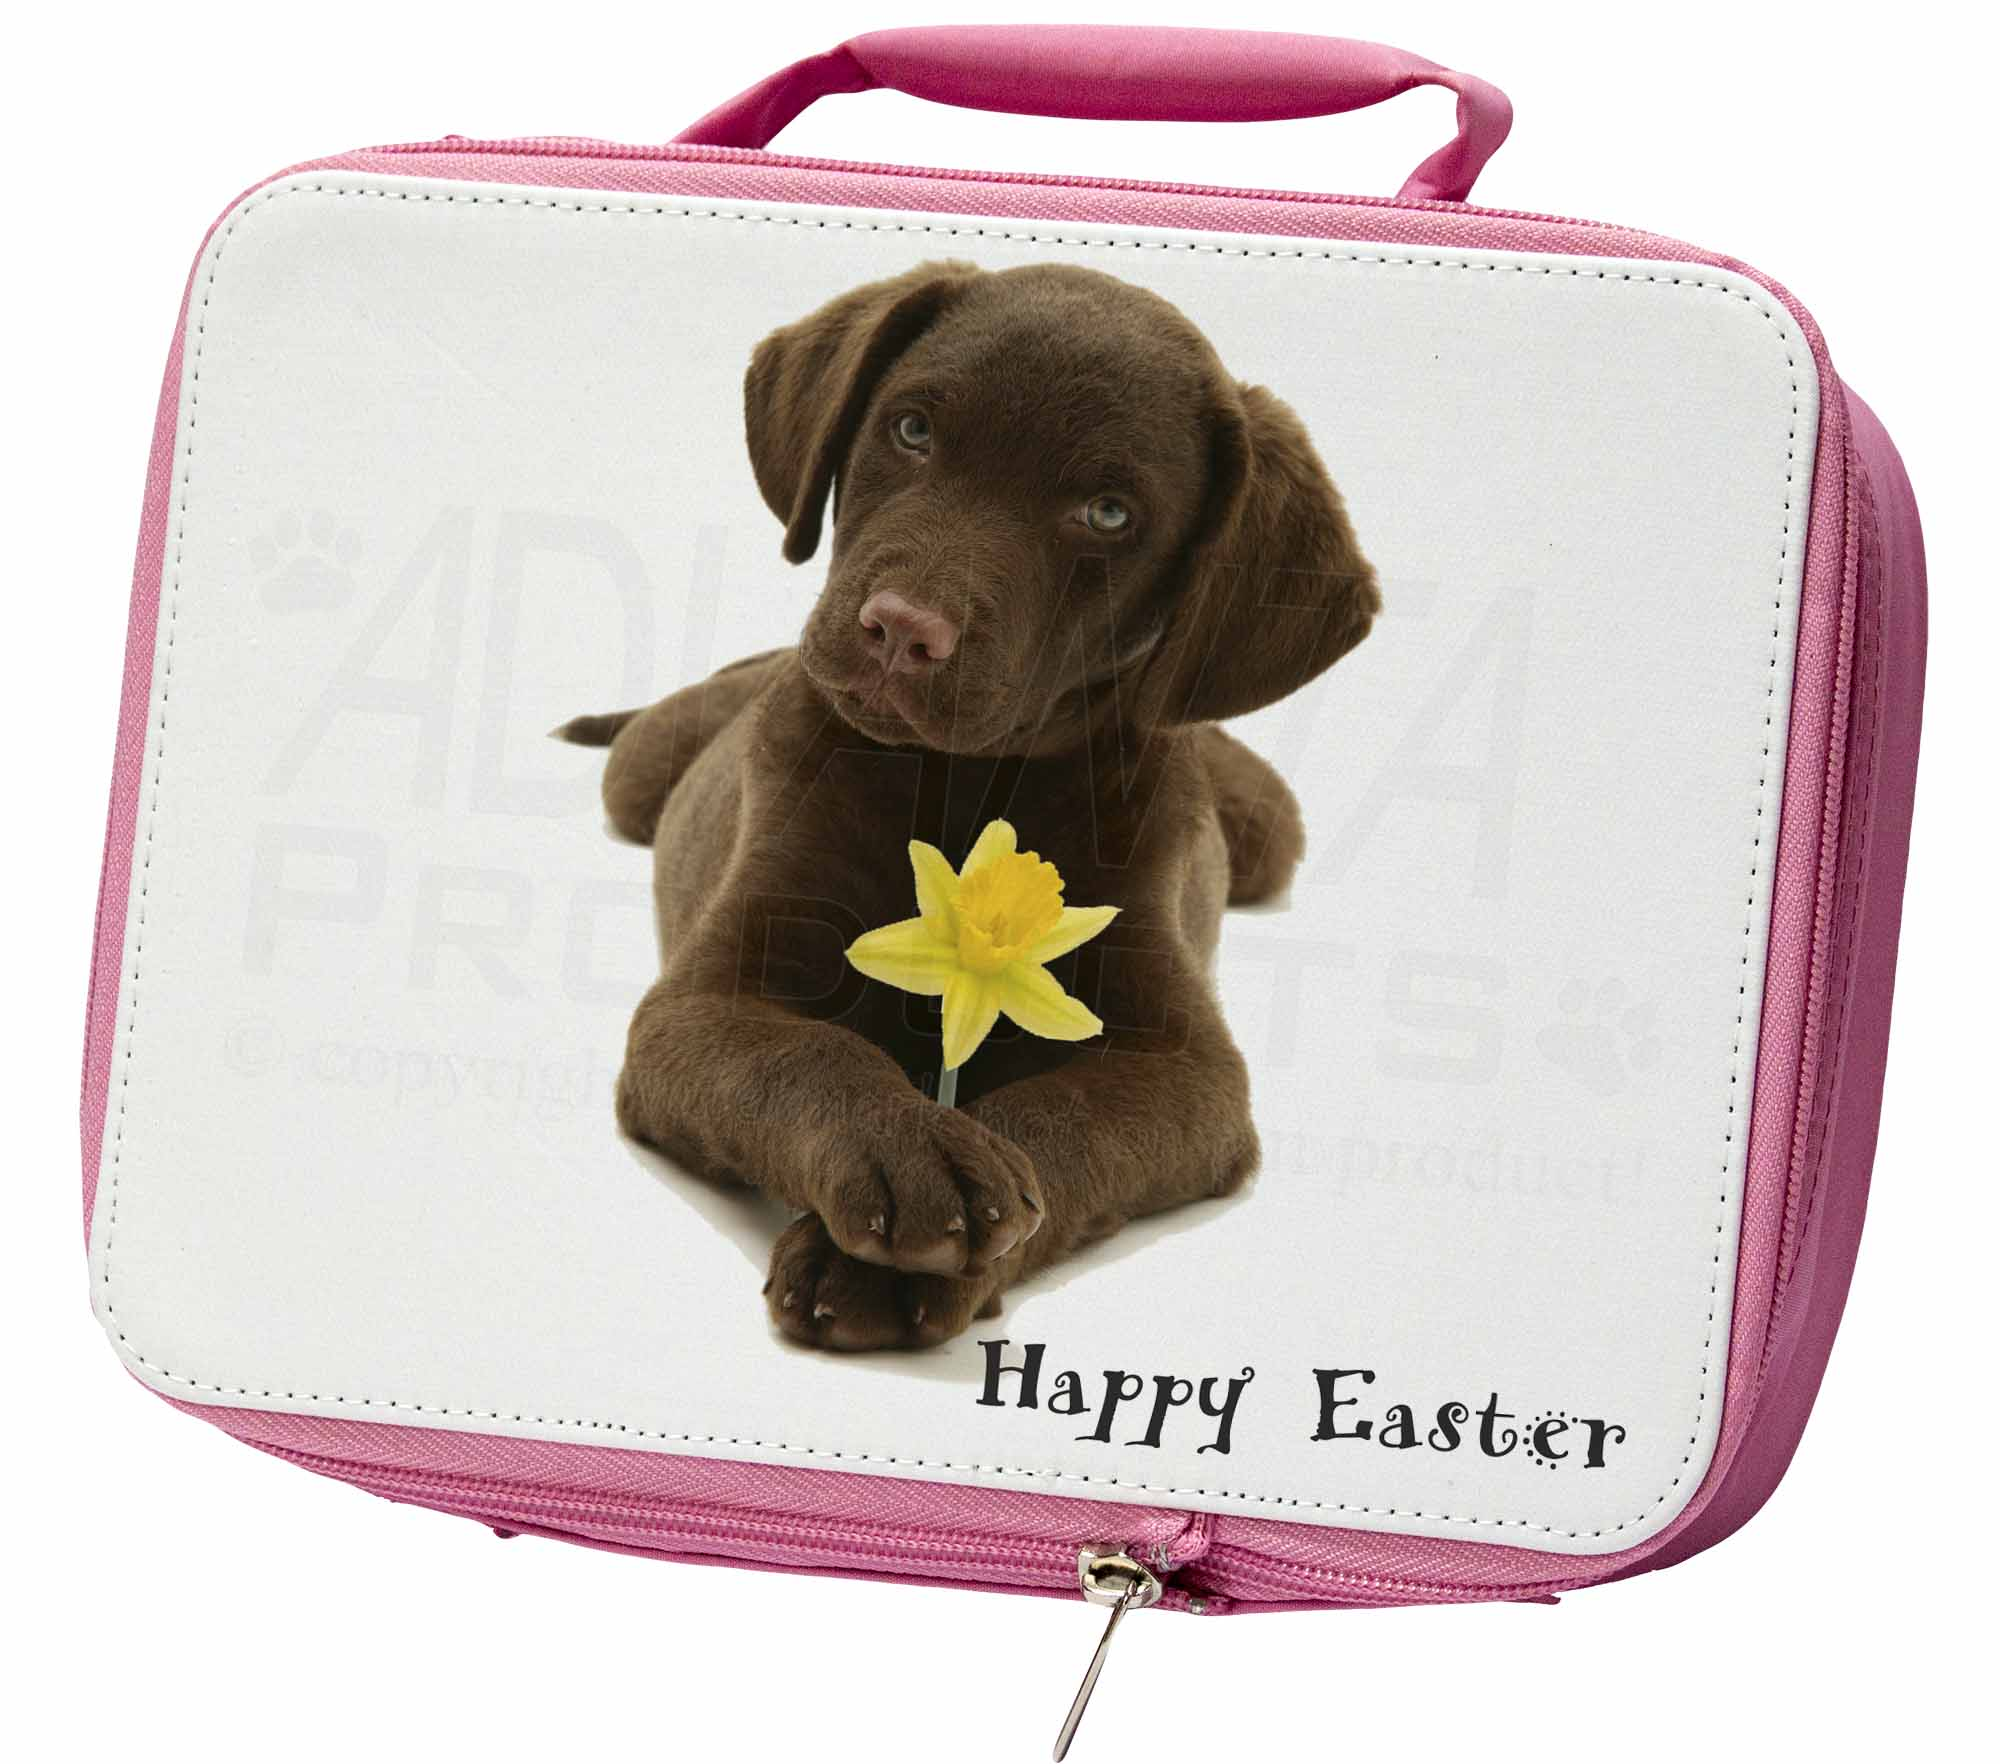 'Happy Easter' Labrador Insulated Pink School Lunch Box Bag, ADL53DA1LBP